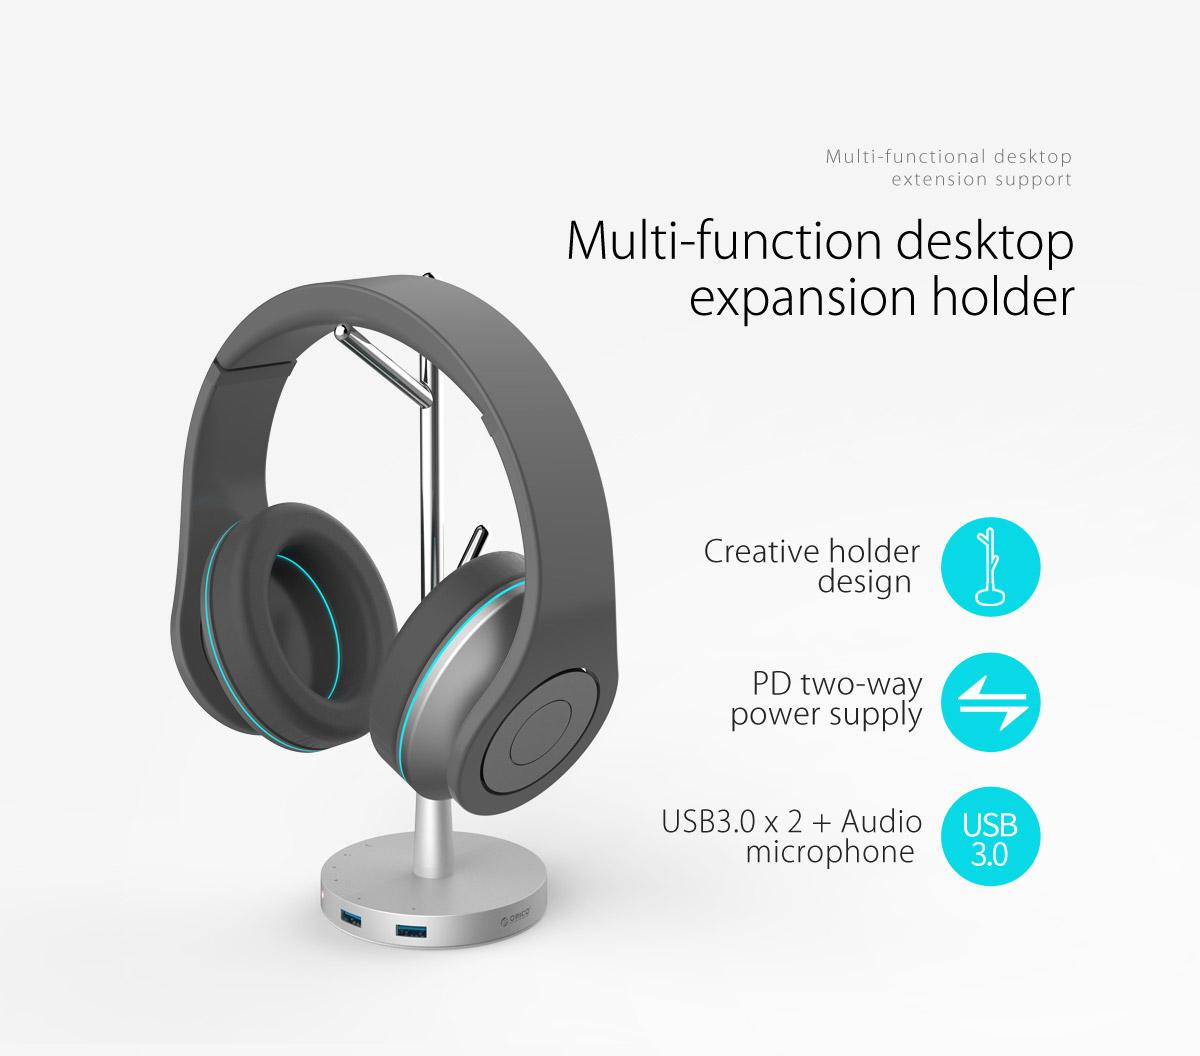 multi-function desktop expansion holder